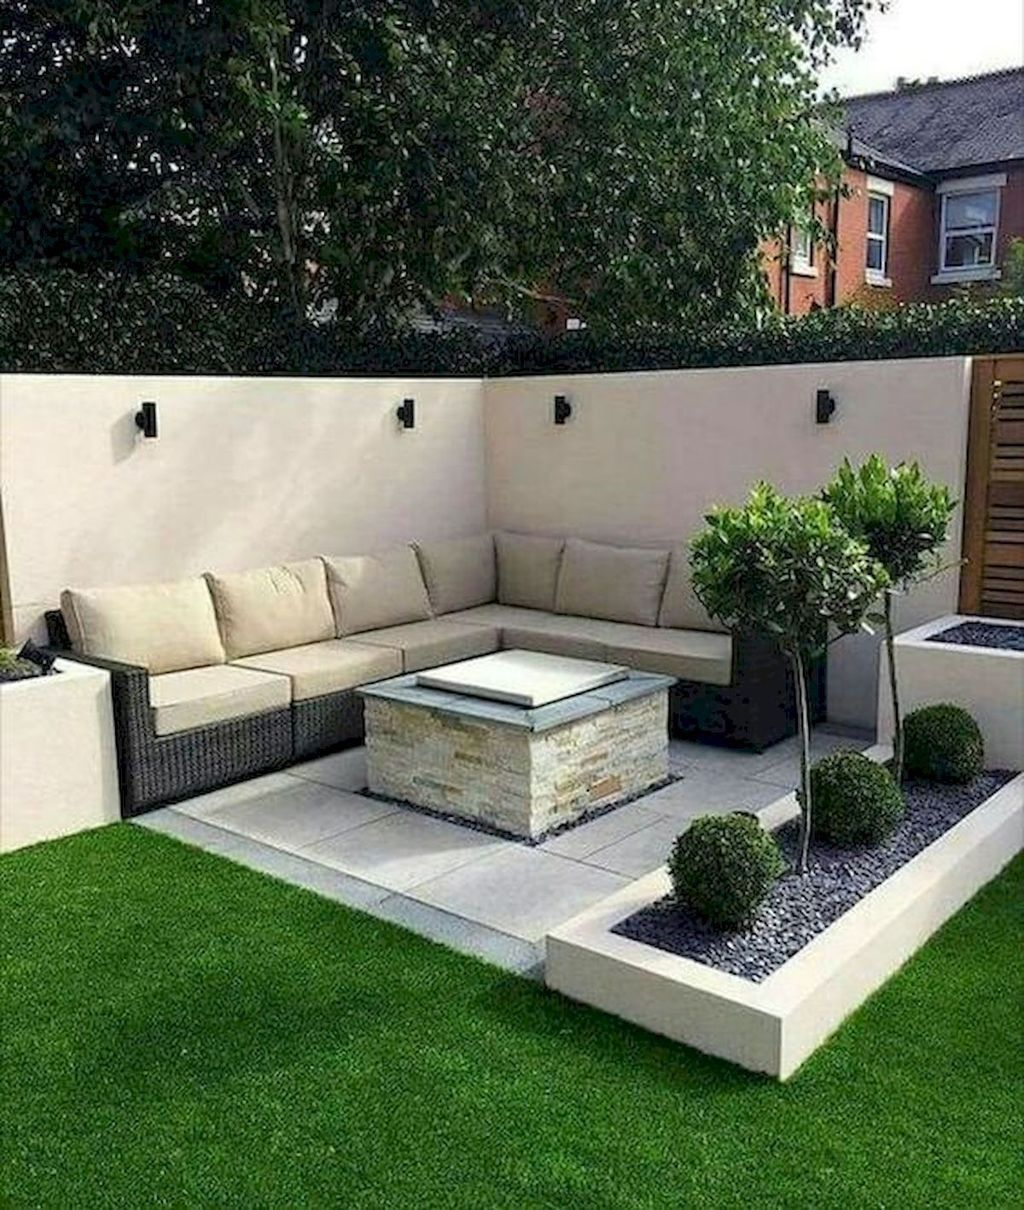 Backyard Landscaping Ideas Browse Landscapes And Also Yards Discover New Landscape Designs And Ideas To I Backyard Landscaping Modern Garden Design Backyard